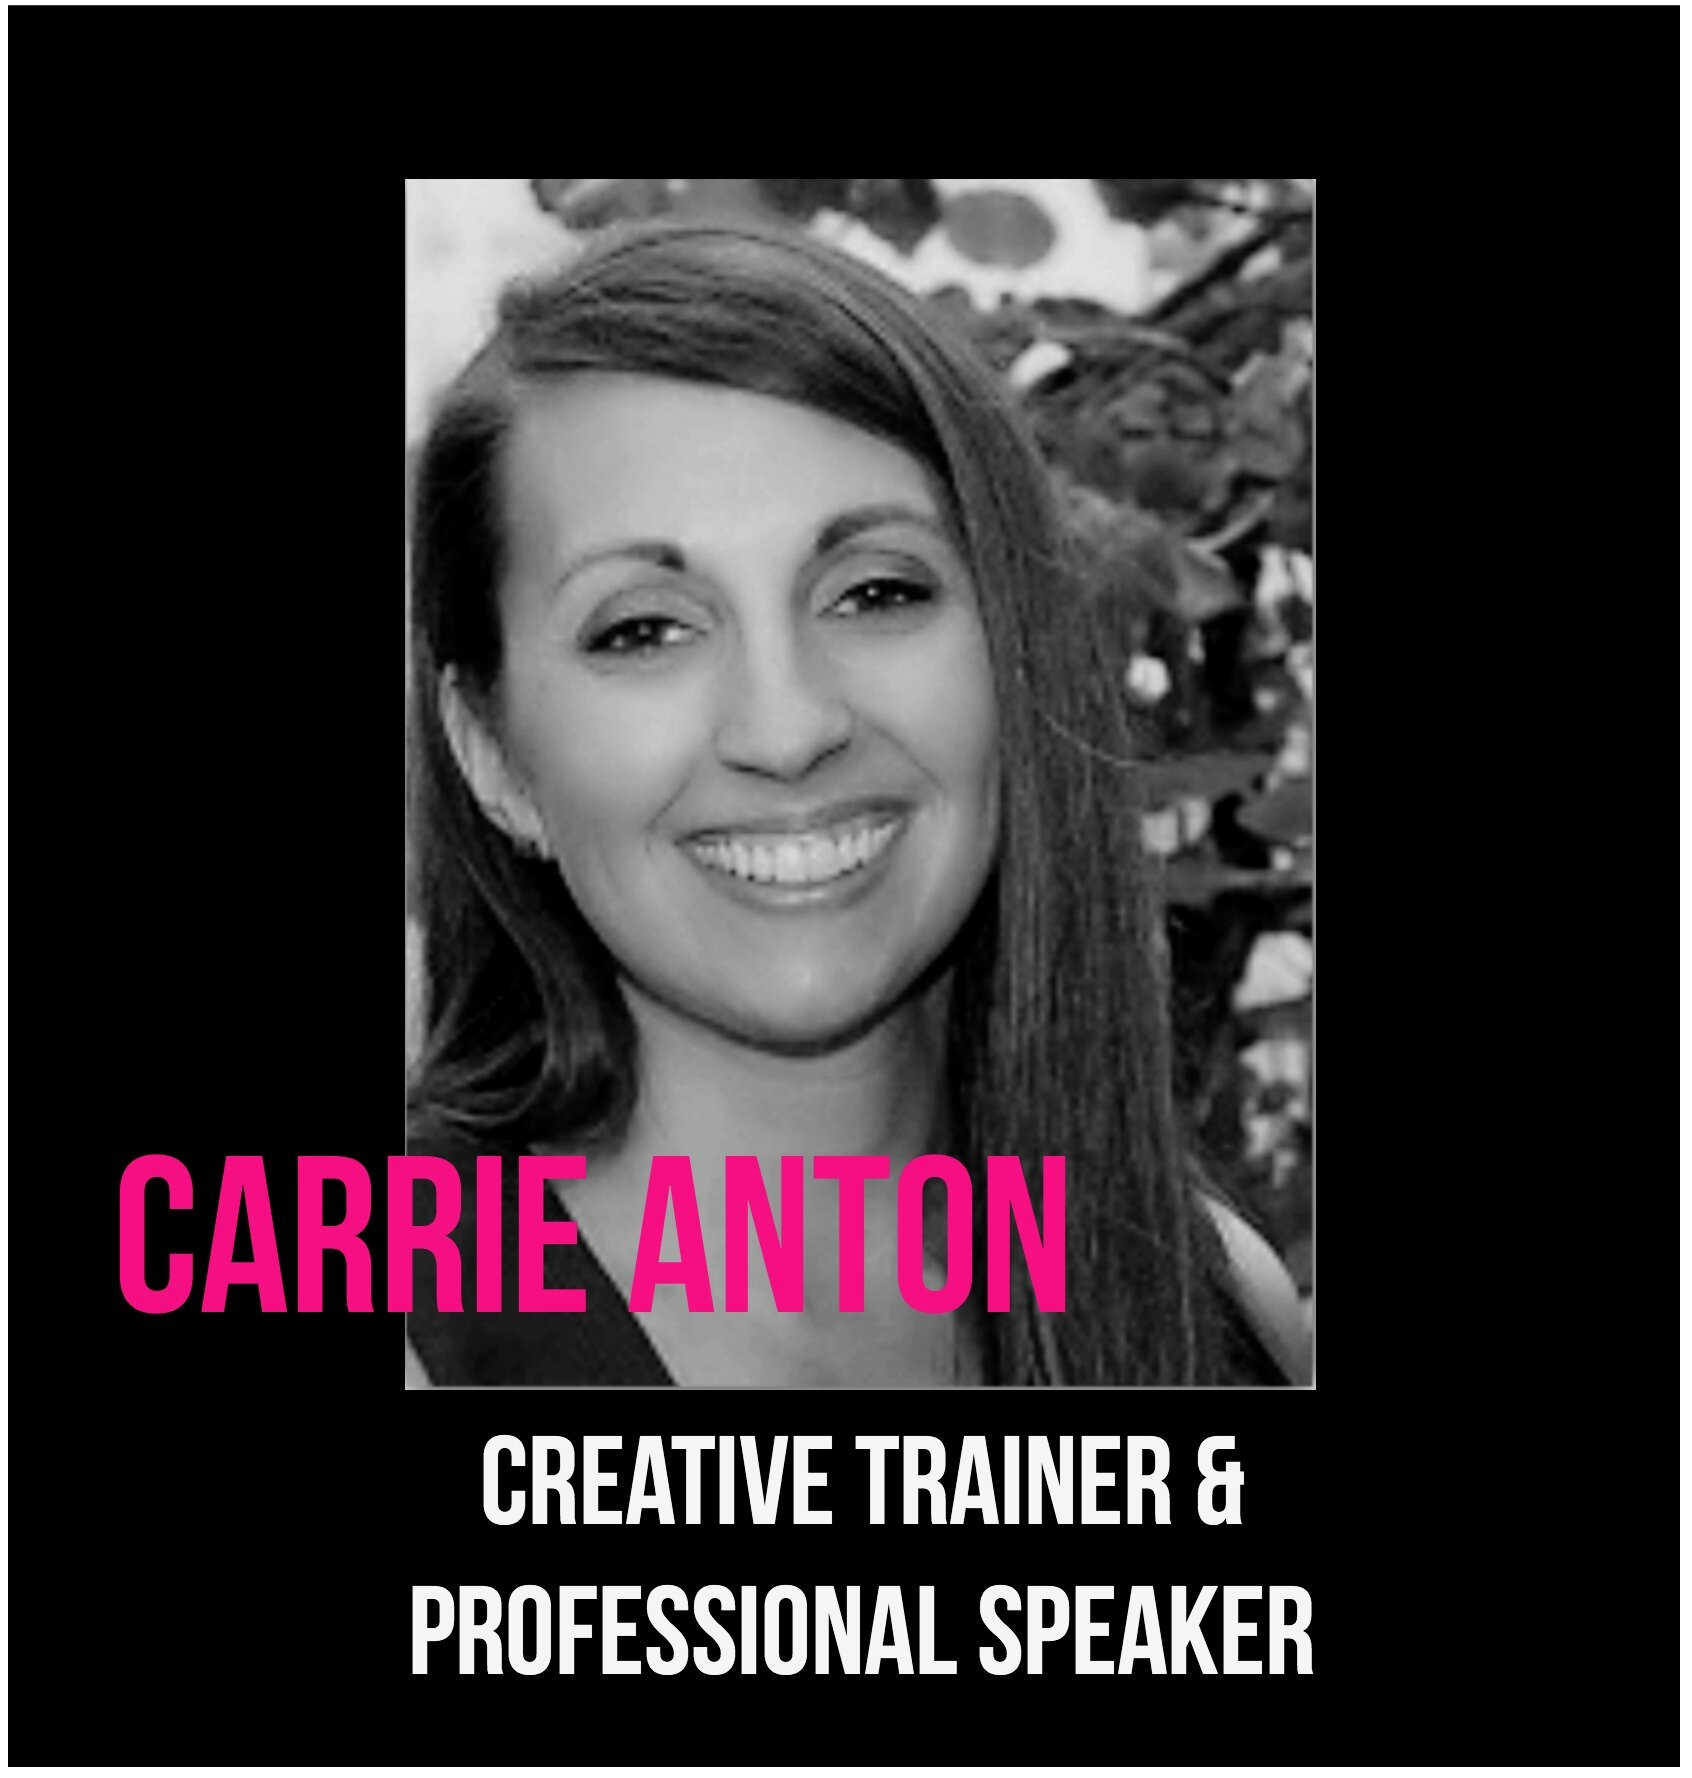 THE JILLS OF ALL TRADES™ Carrie Anton Creative Trainer & Professional Speaker